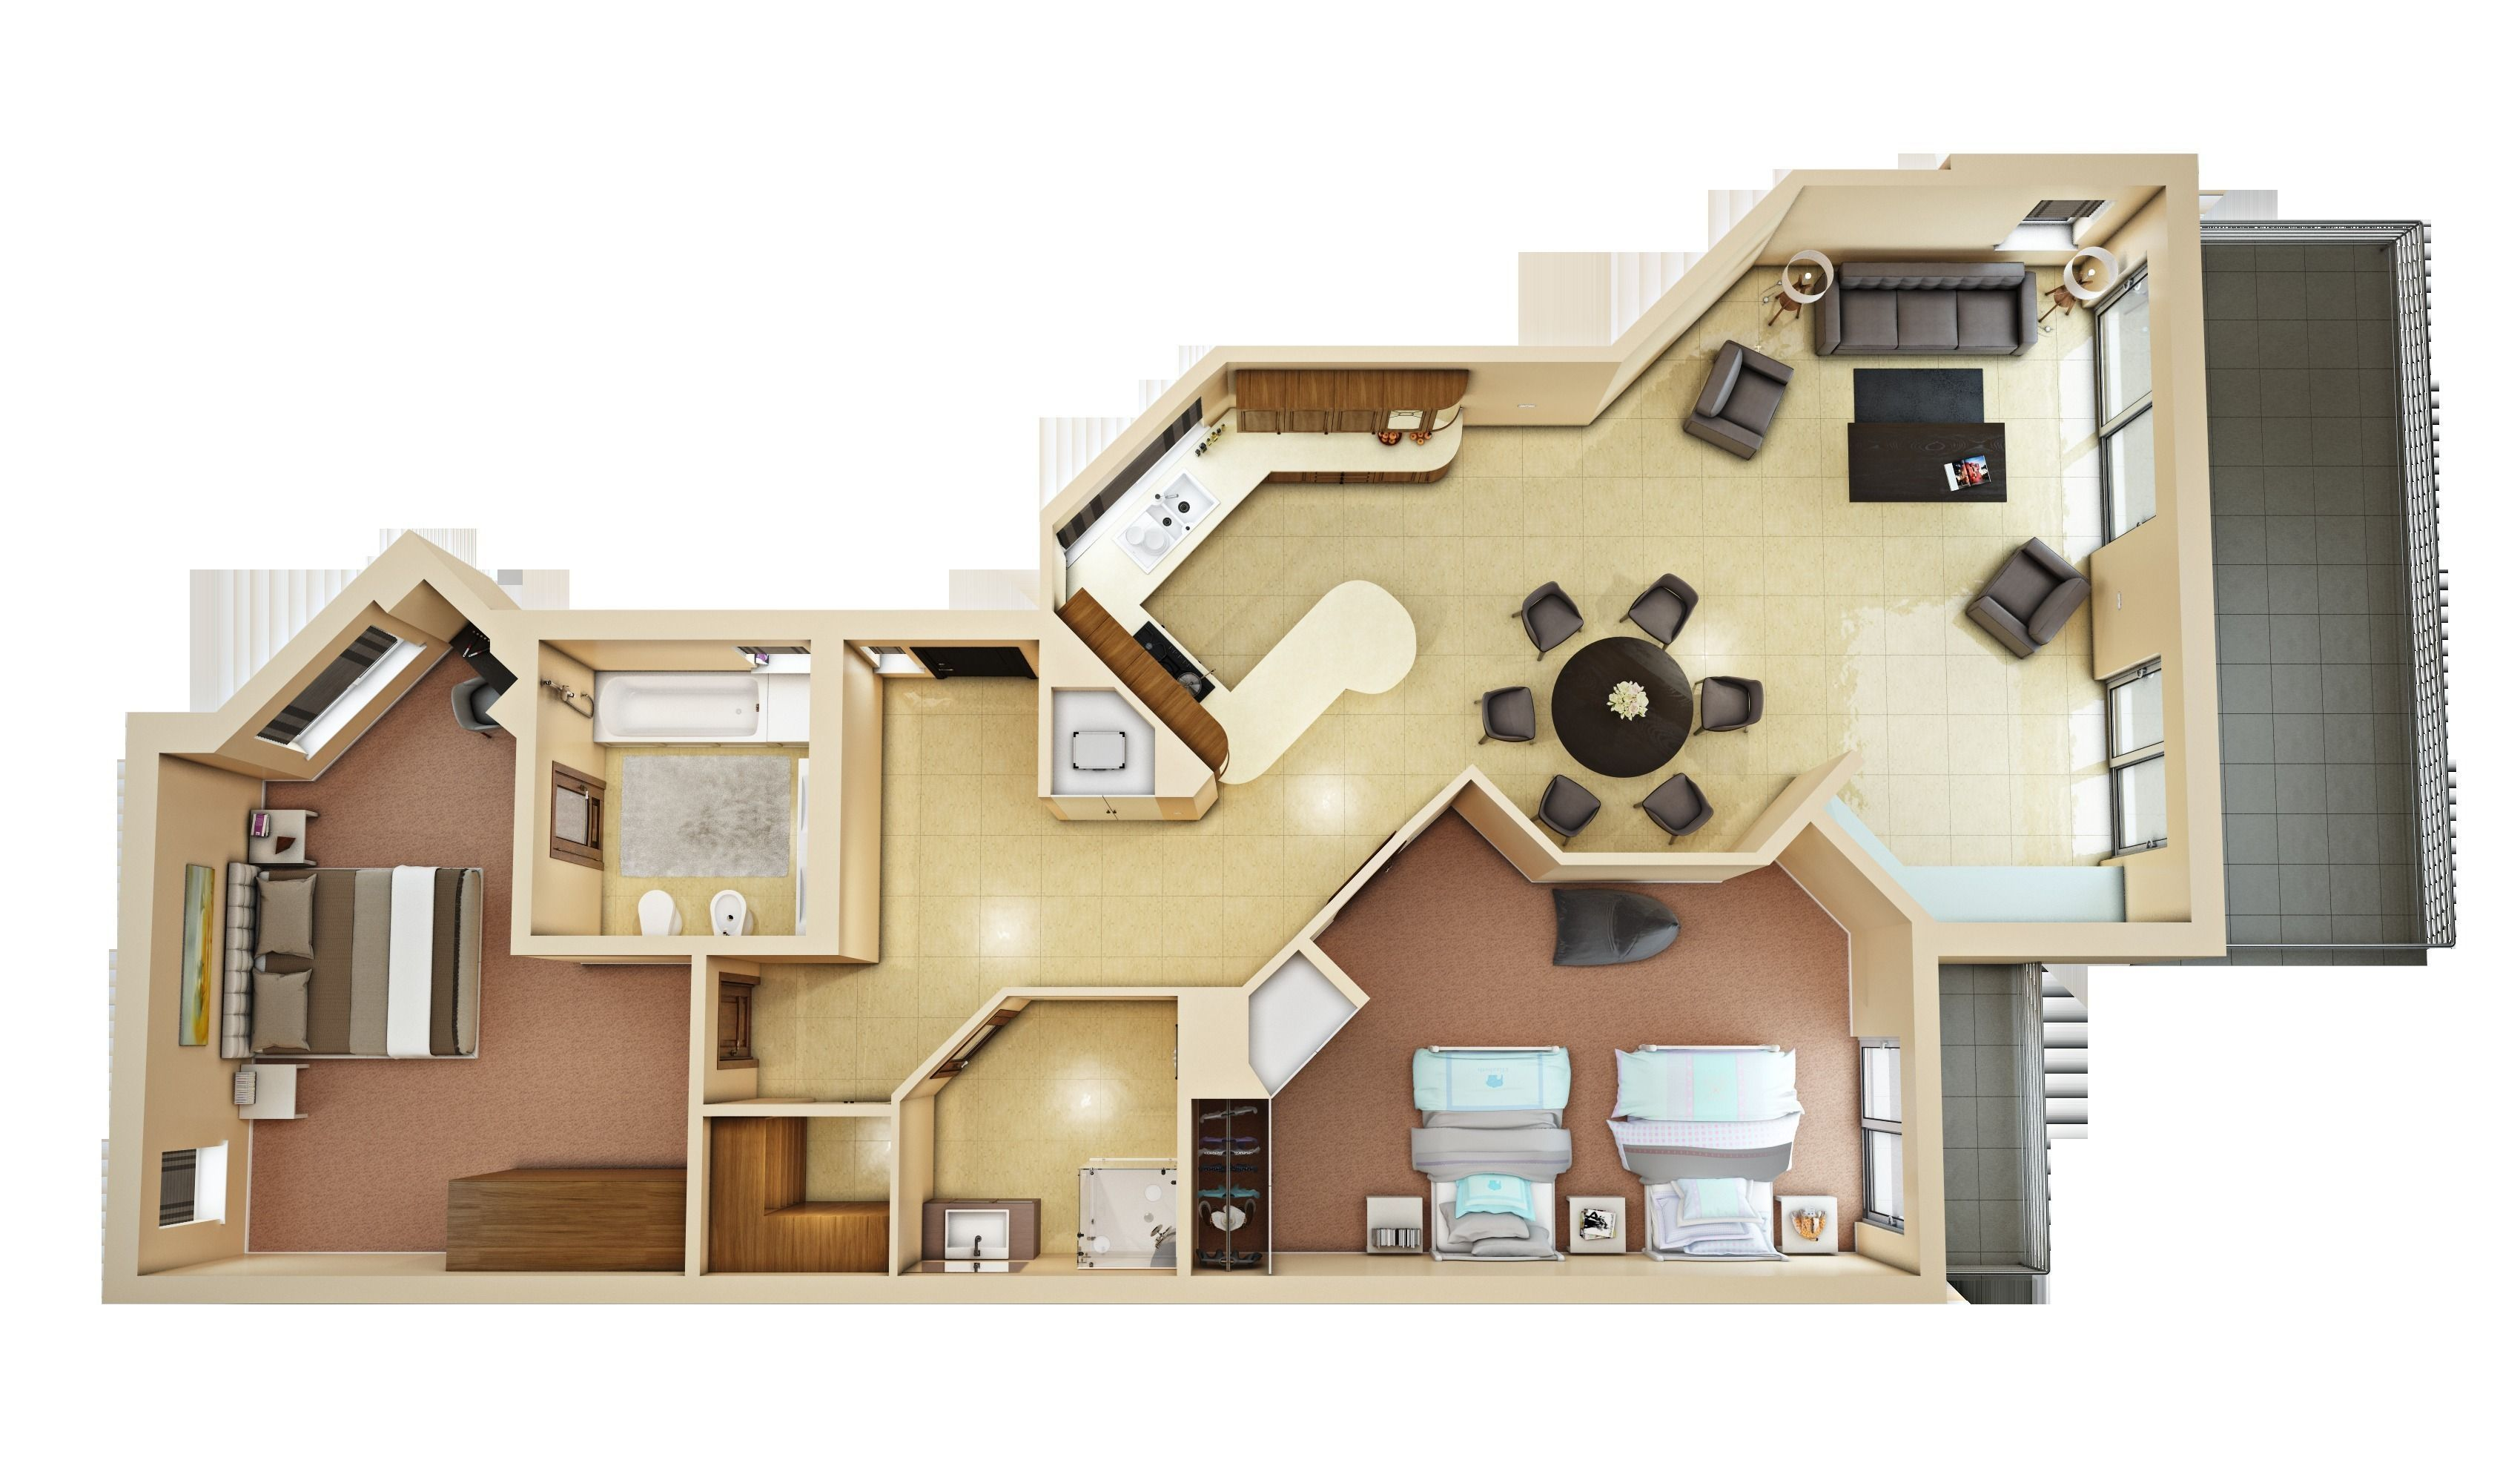 3d Floor Plan 4 3d Model Max: 3d model house design